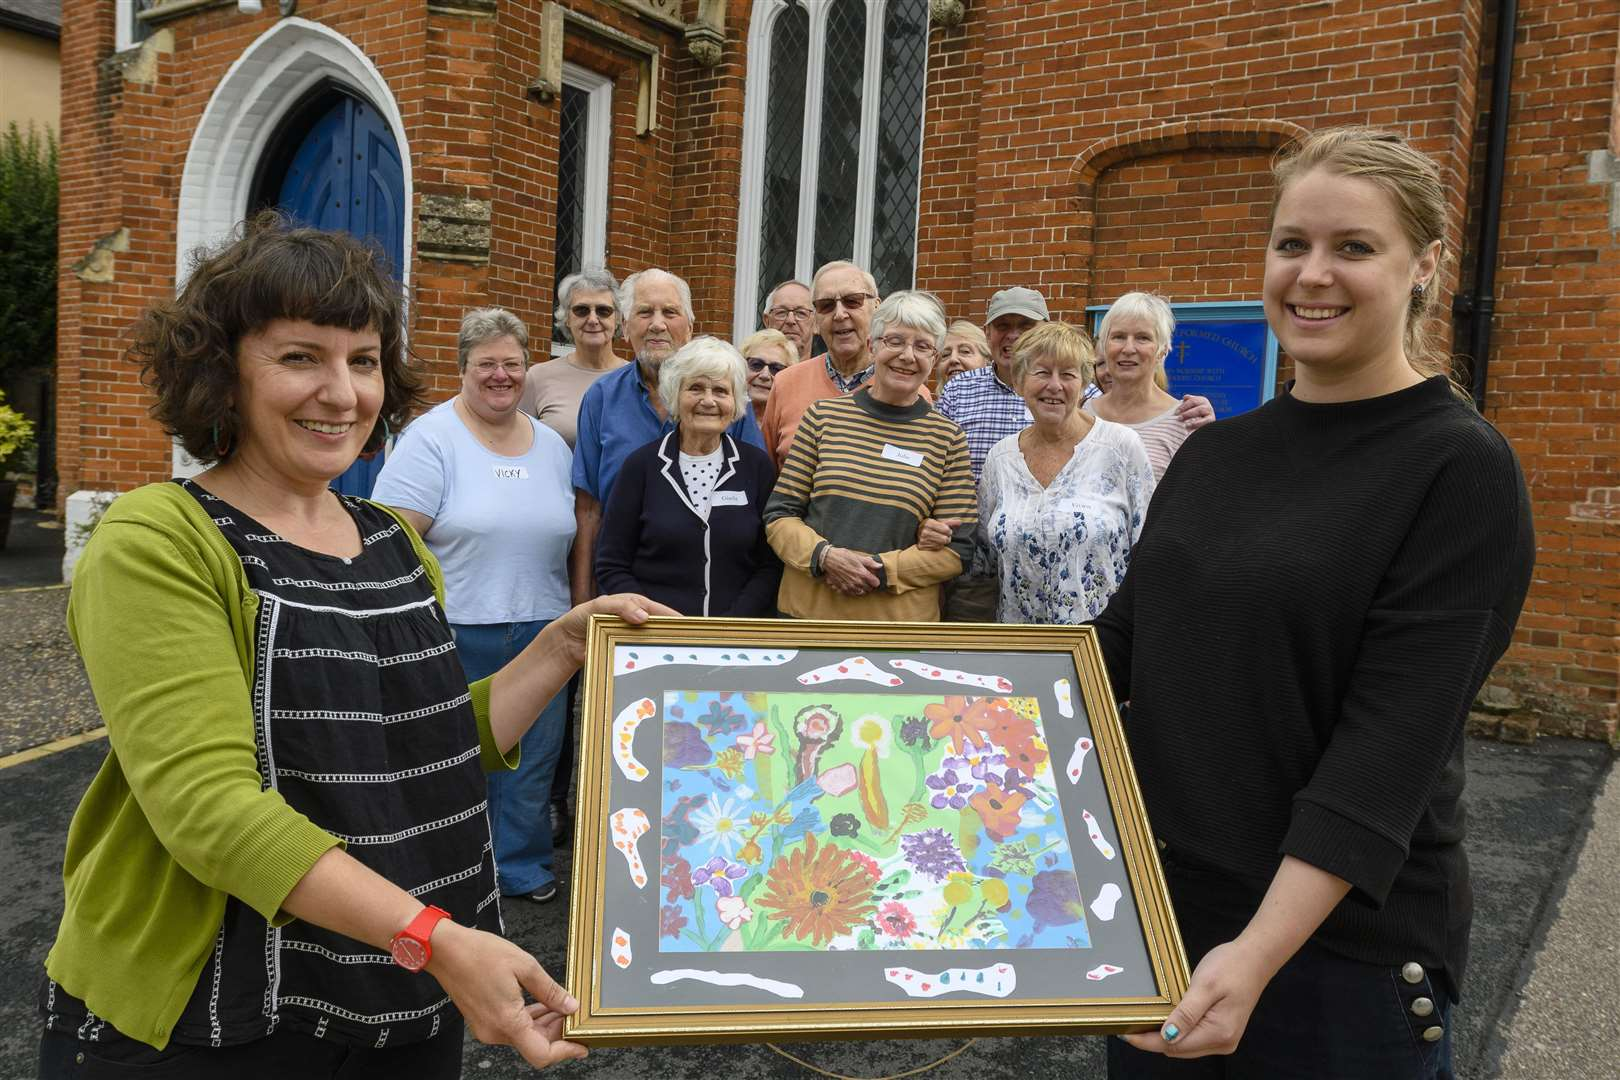 Age UK Norfolk dementia lead, Amelia Borley and Jessica Vincent, Corn Hall outreach worker, at the Untied Reformed Church, Diss, with some of the service users and volunteers who have taken part in the exhibition. Picture by Mark Bullimore Photography.